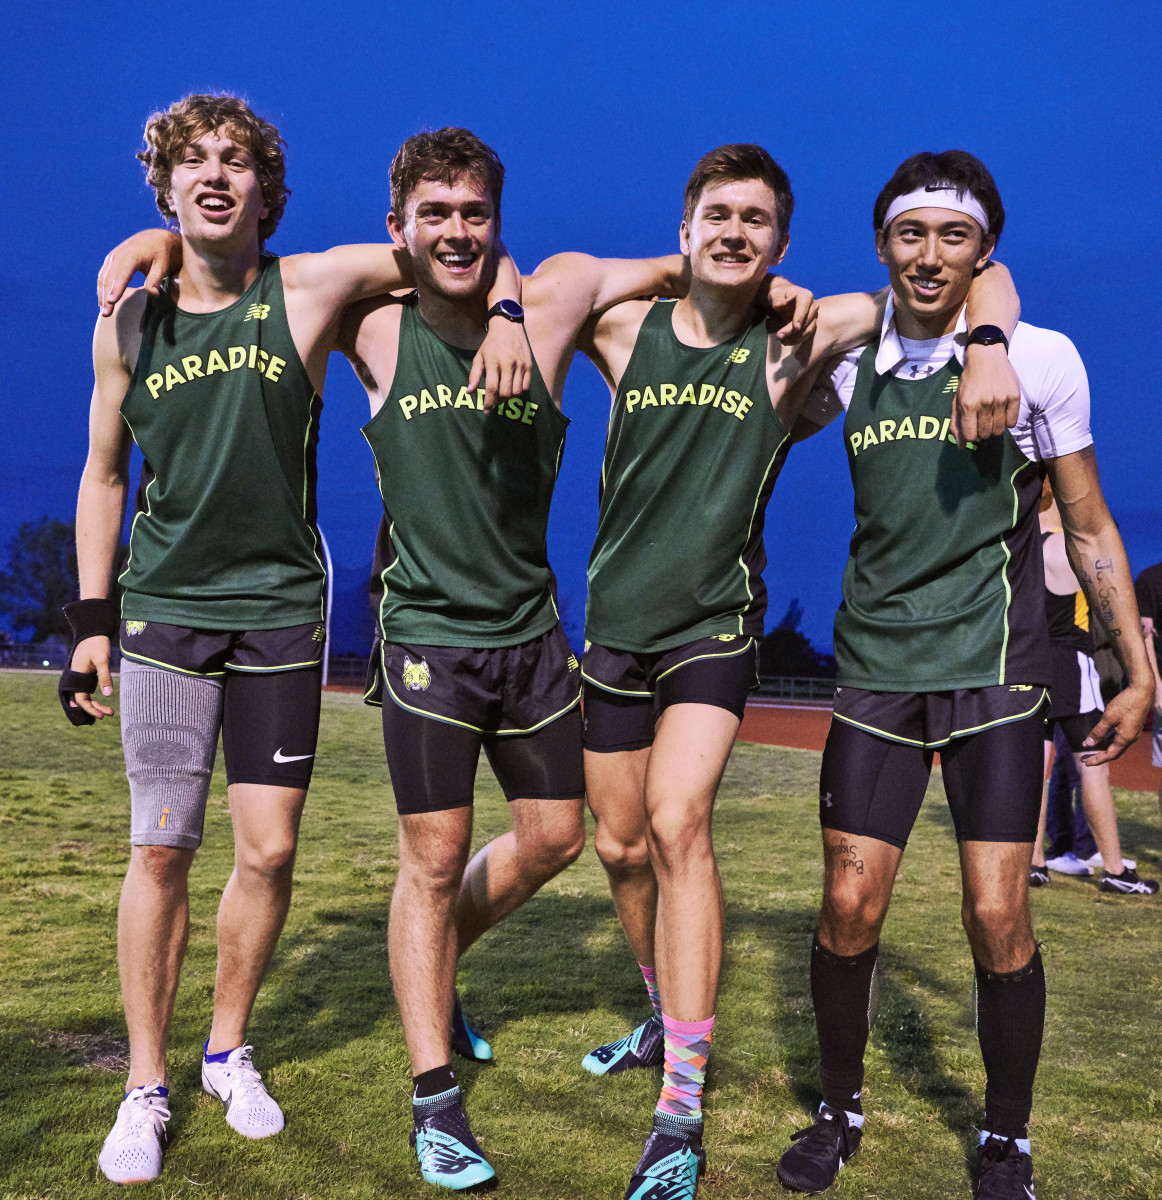 The 4x400 relay team of (from near right) Price, McKay, Roehling and Weldon overcame tremendous adversity to set a section record.